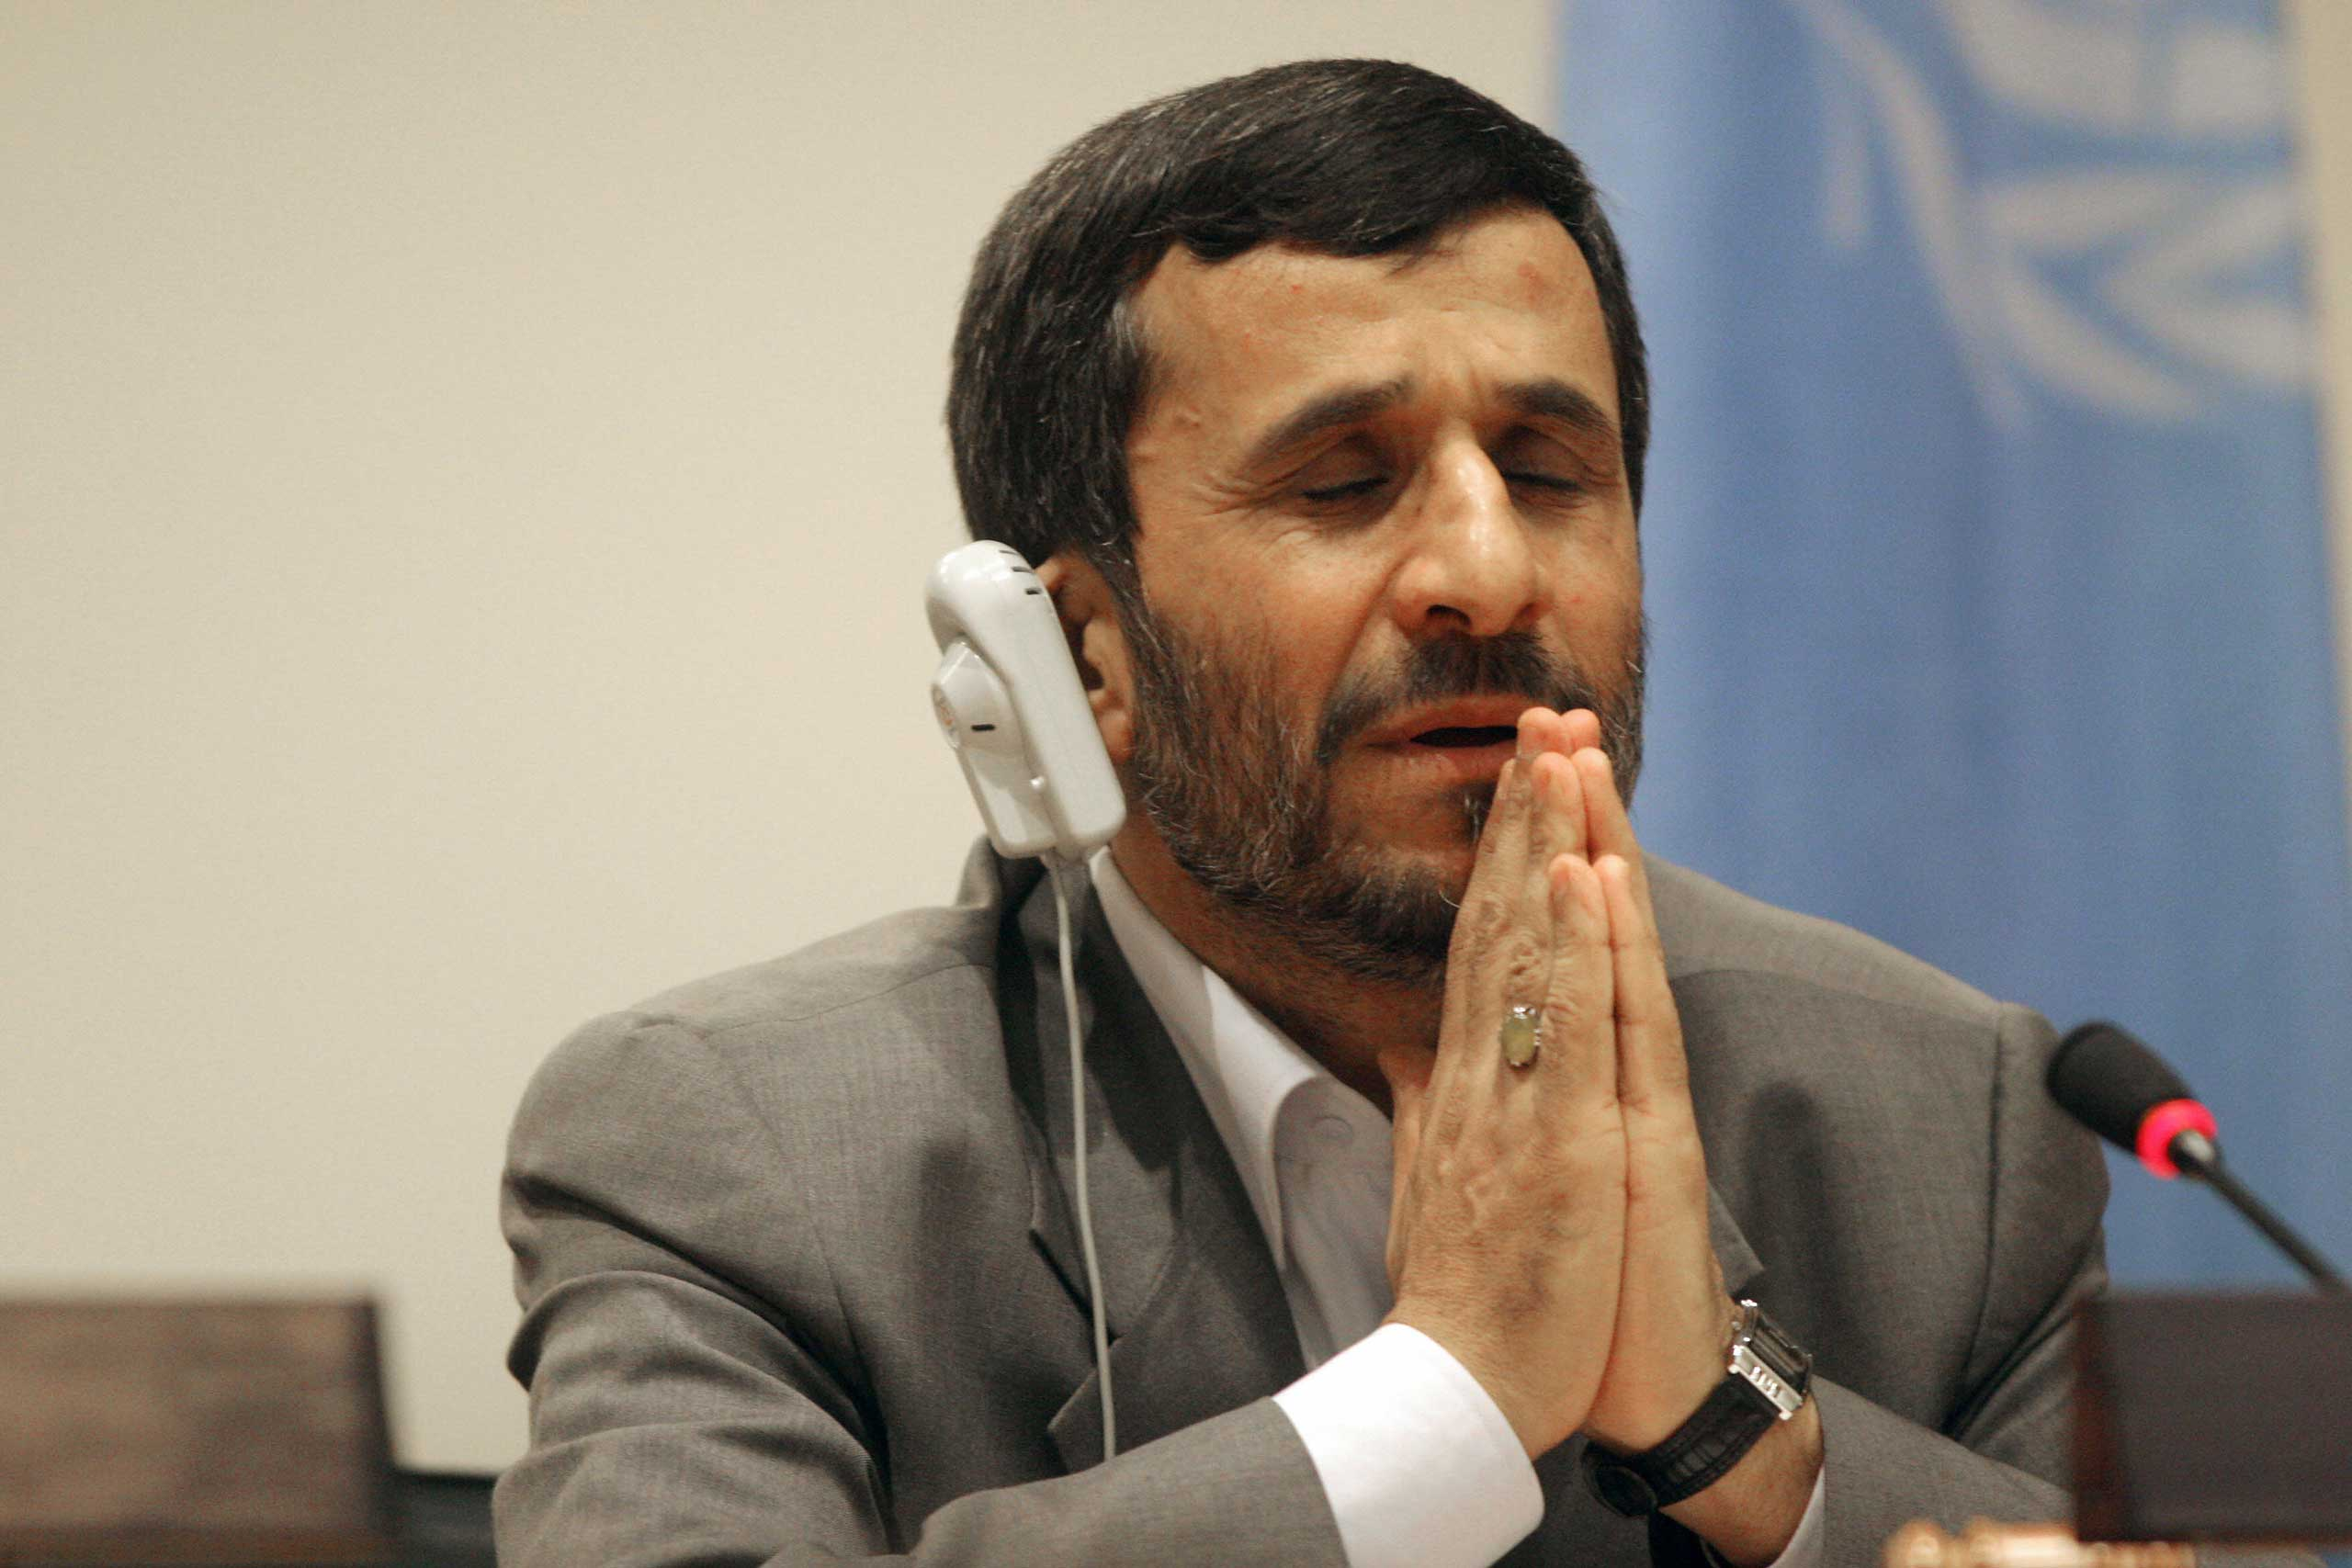 Then-Iranian President Mahmoud Ahmedinejad speaks during a press conference at United Nations headquarters in Sept. 2007.